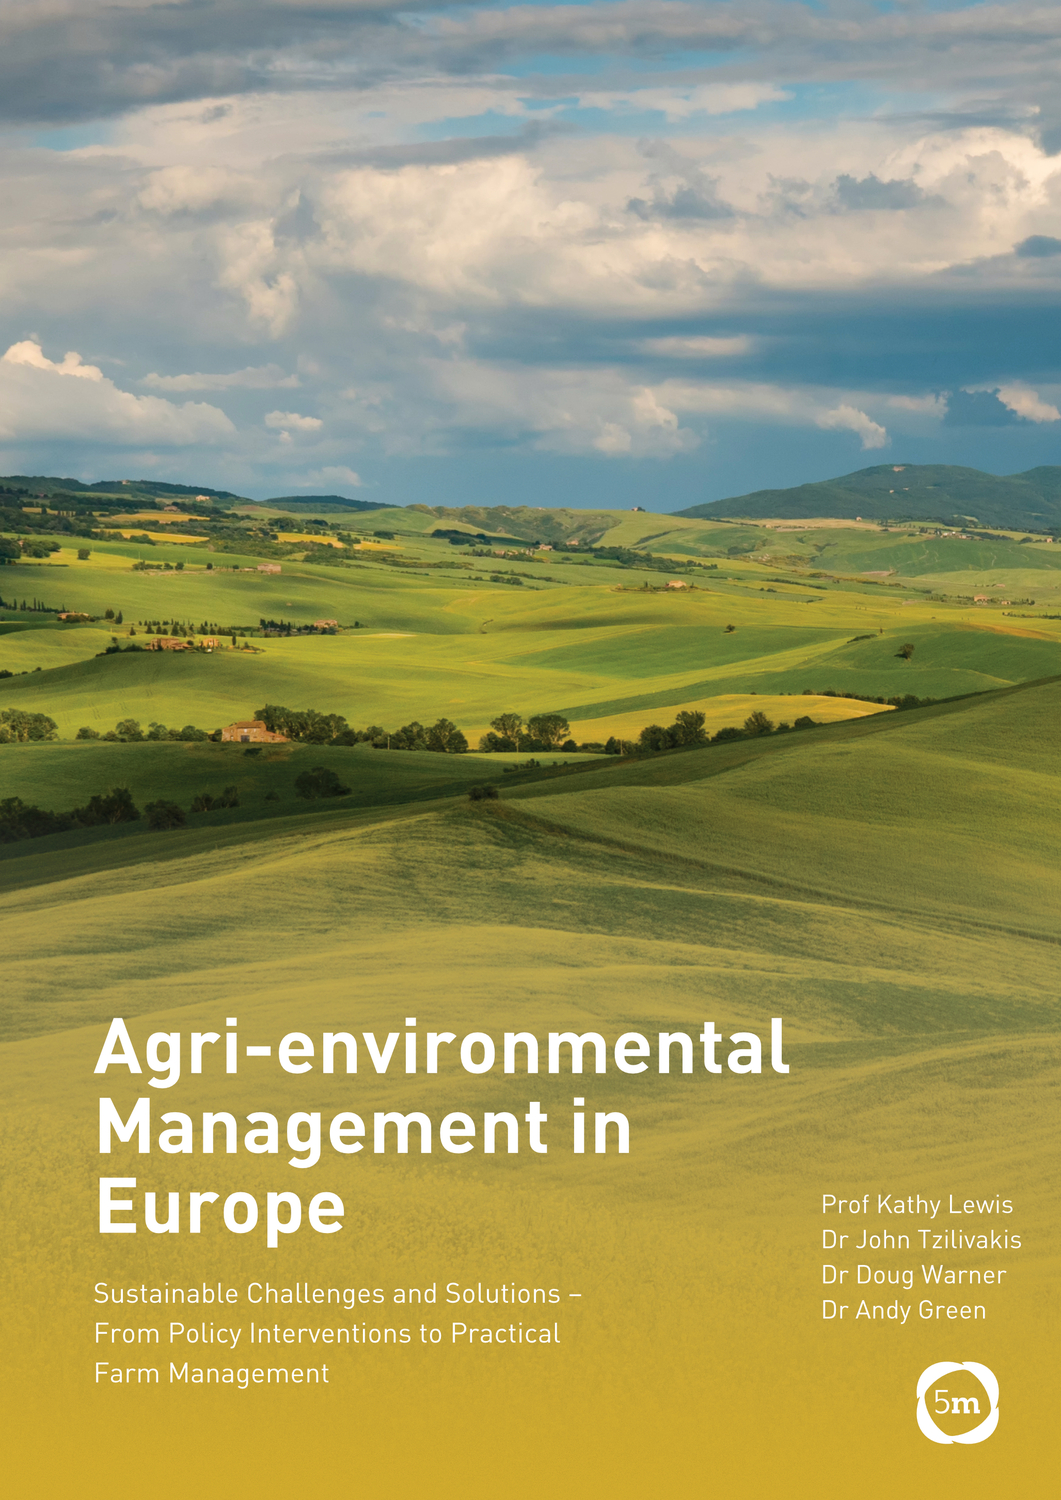 Agri-environmental Management in Europe